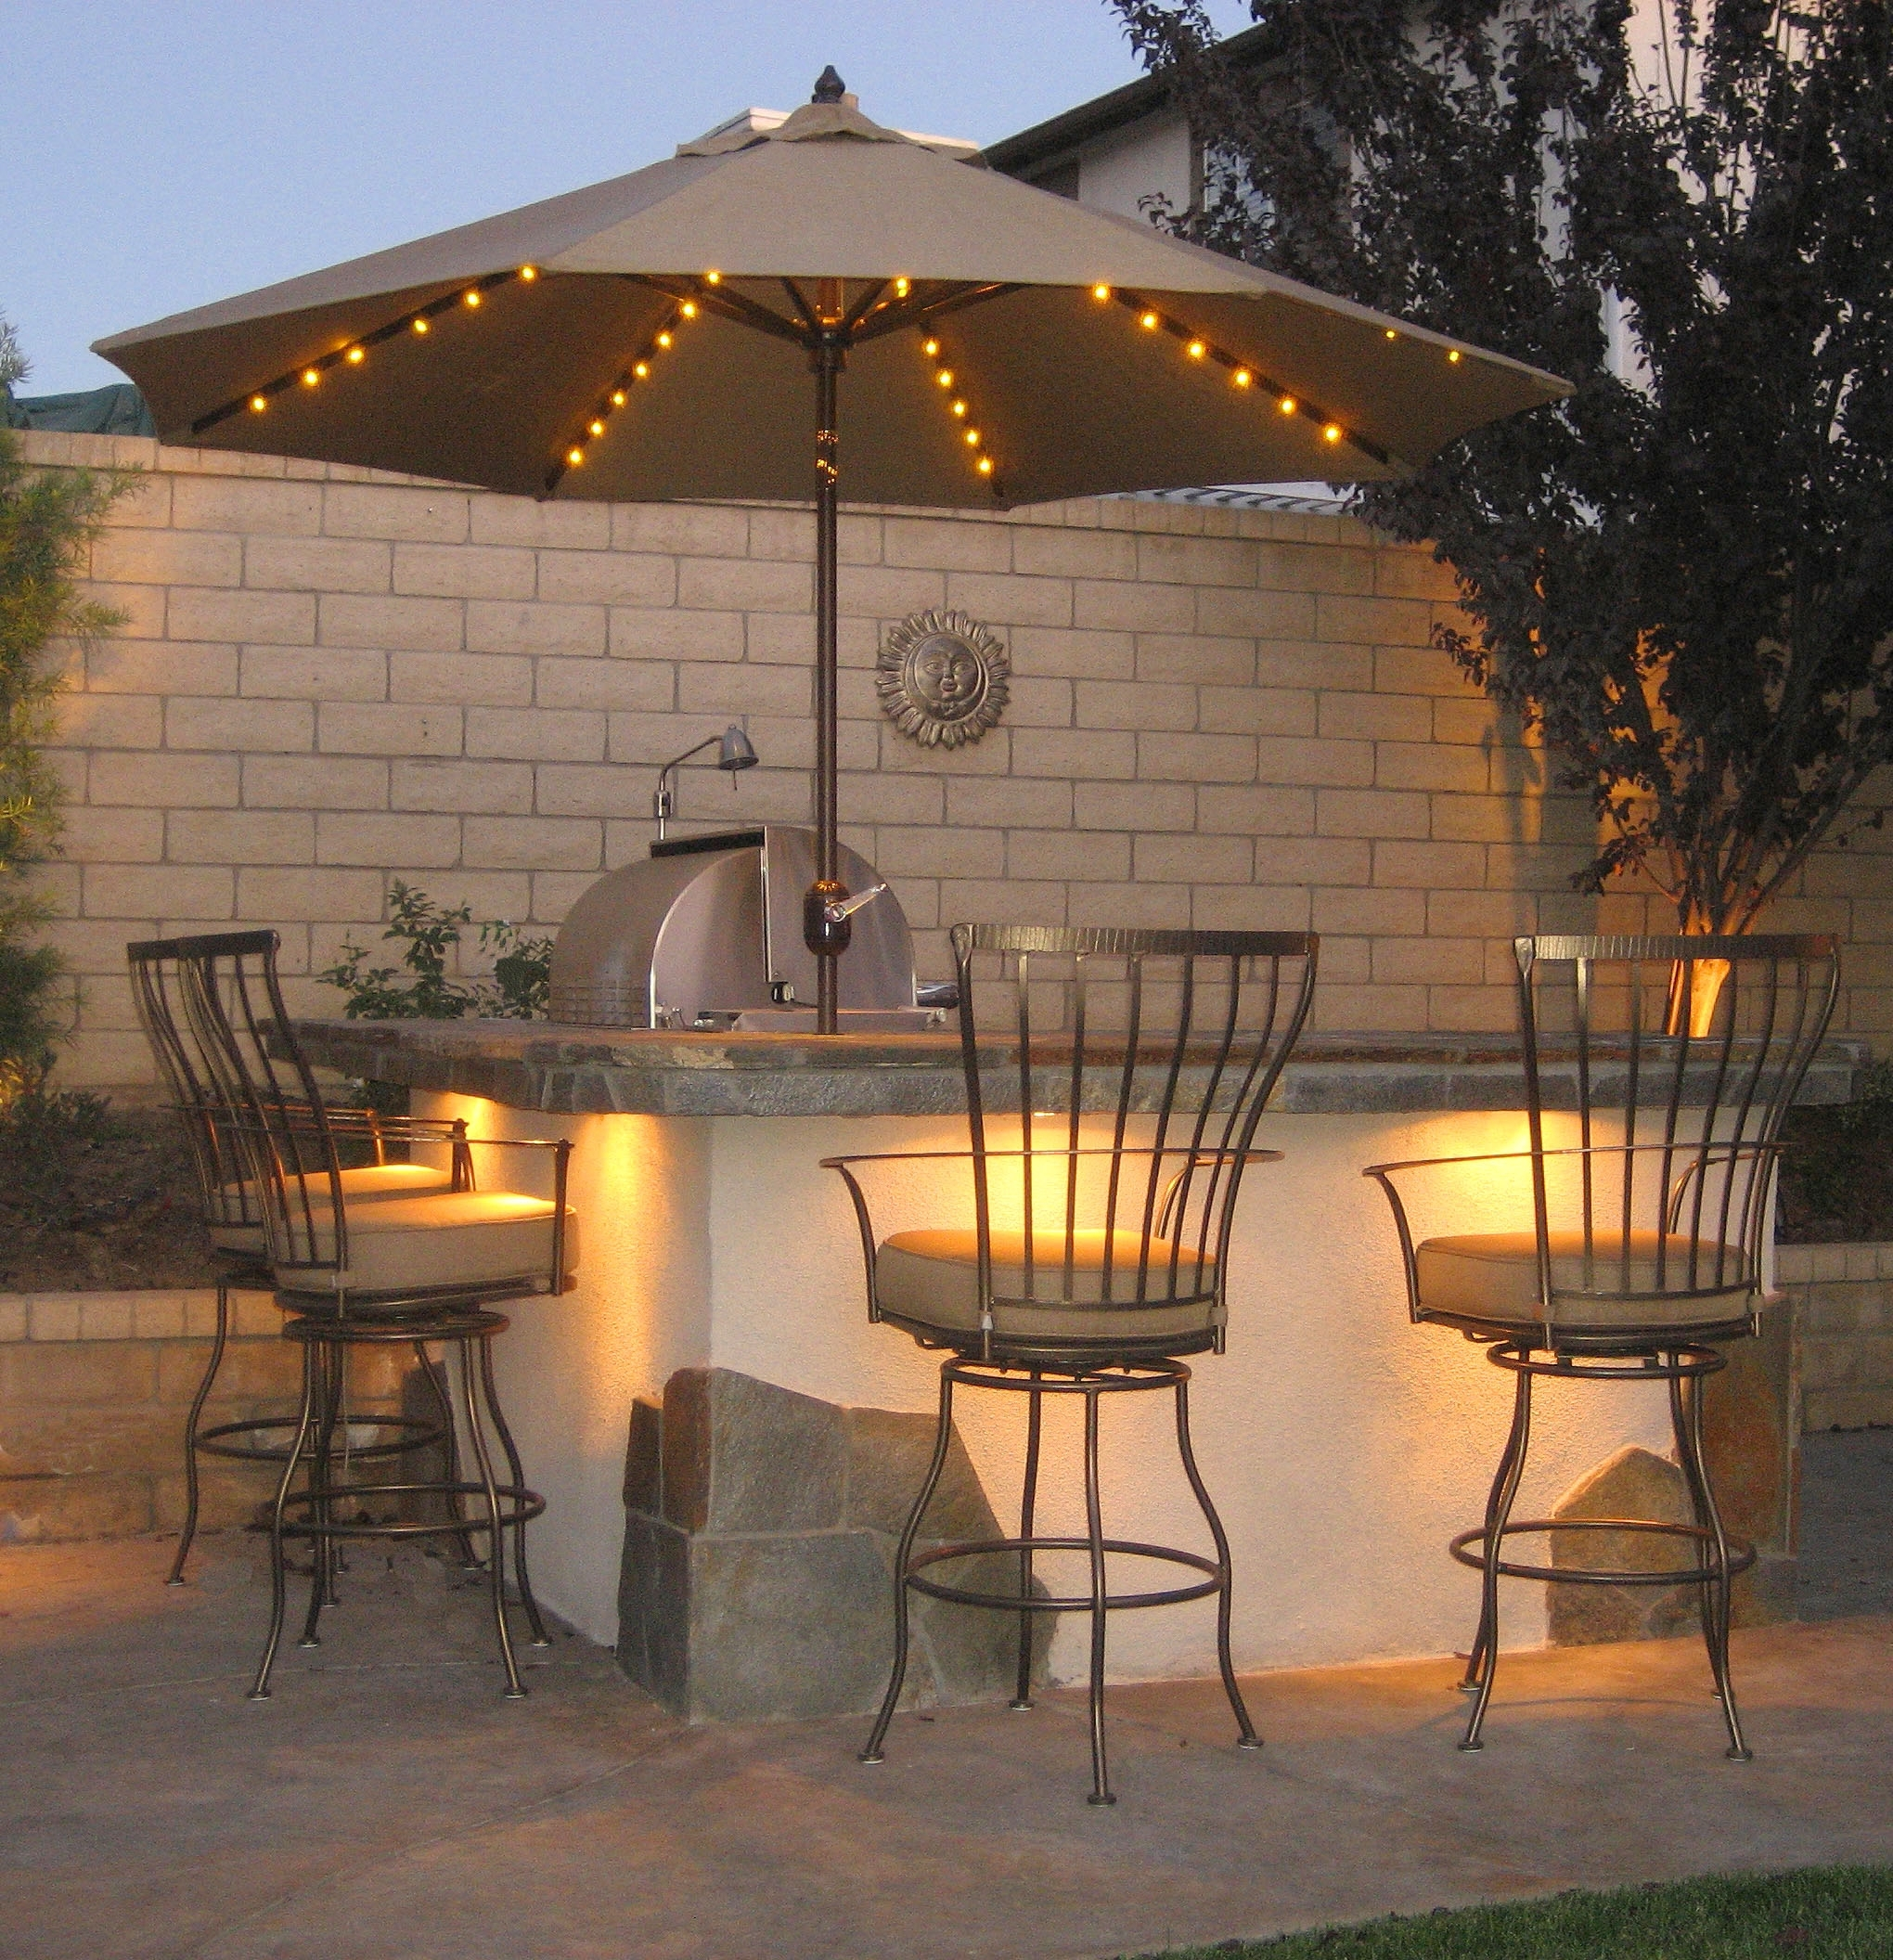 Lights For Patio Umbrella — Mistikcamping Home Design : Different In Recent Outdoor Umbrella Lanterns (View 7 of 20)